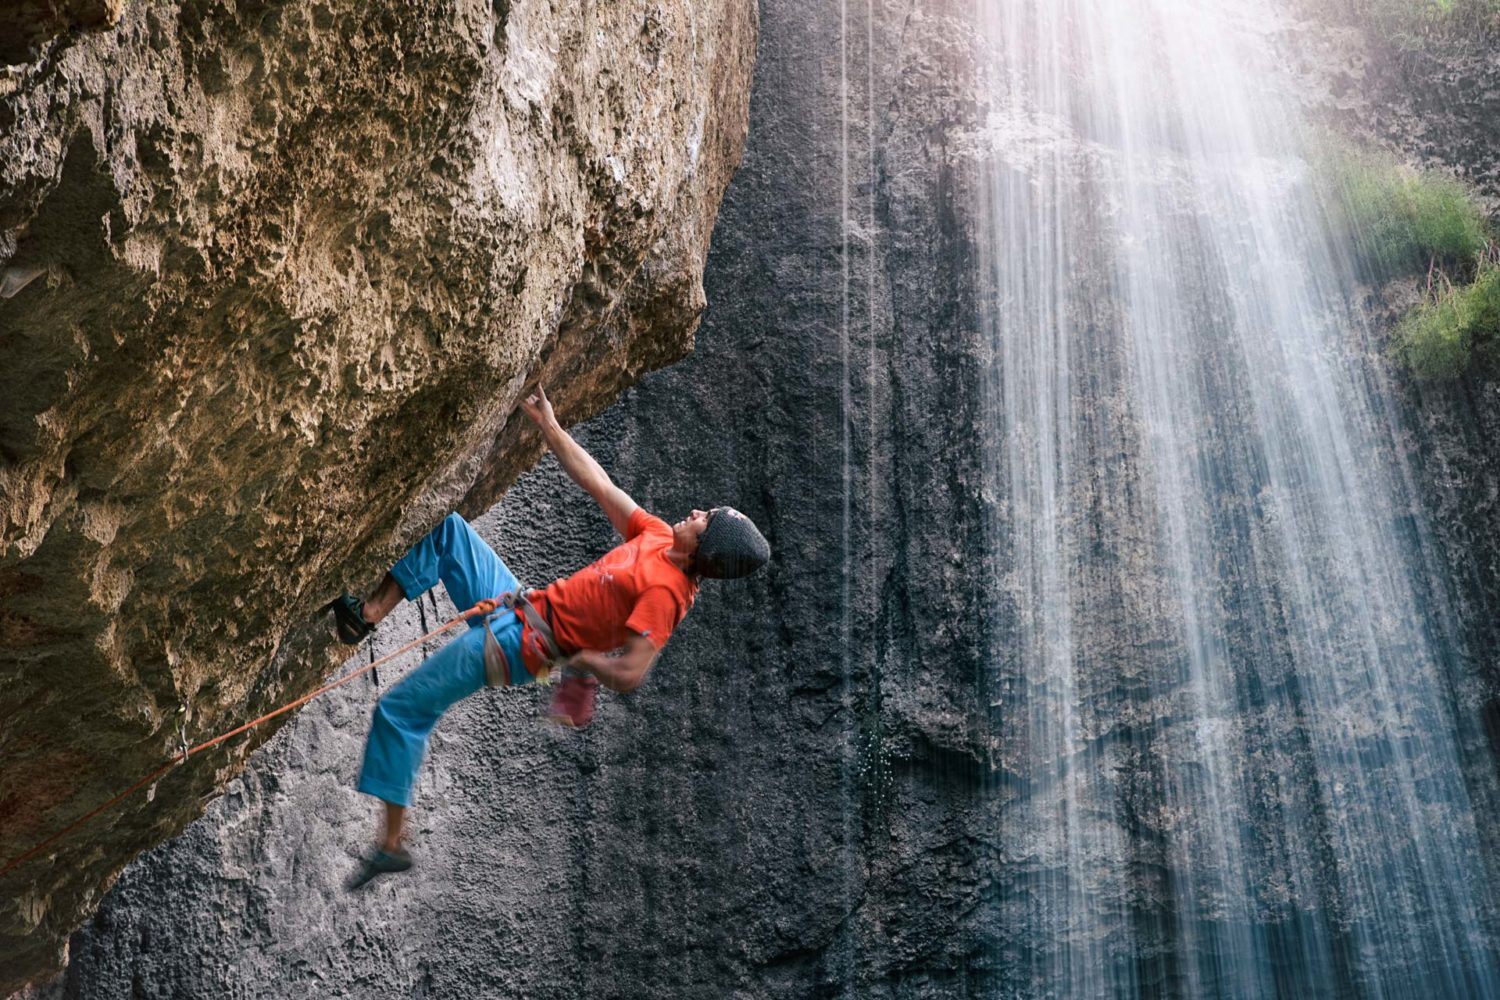 Interview: The Action Photography of Corey Rich